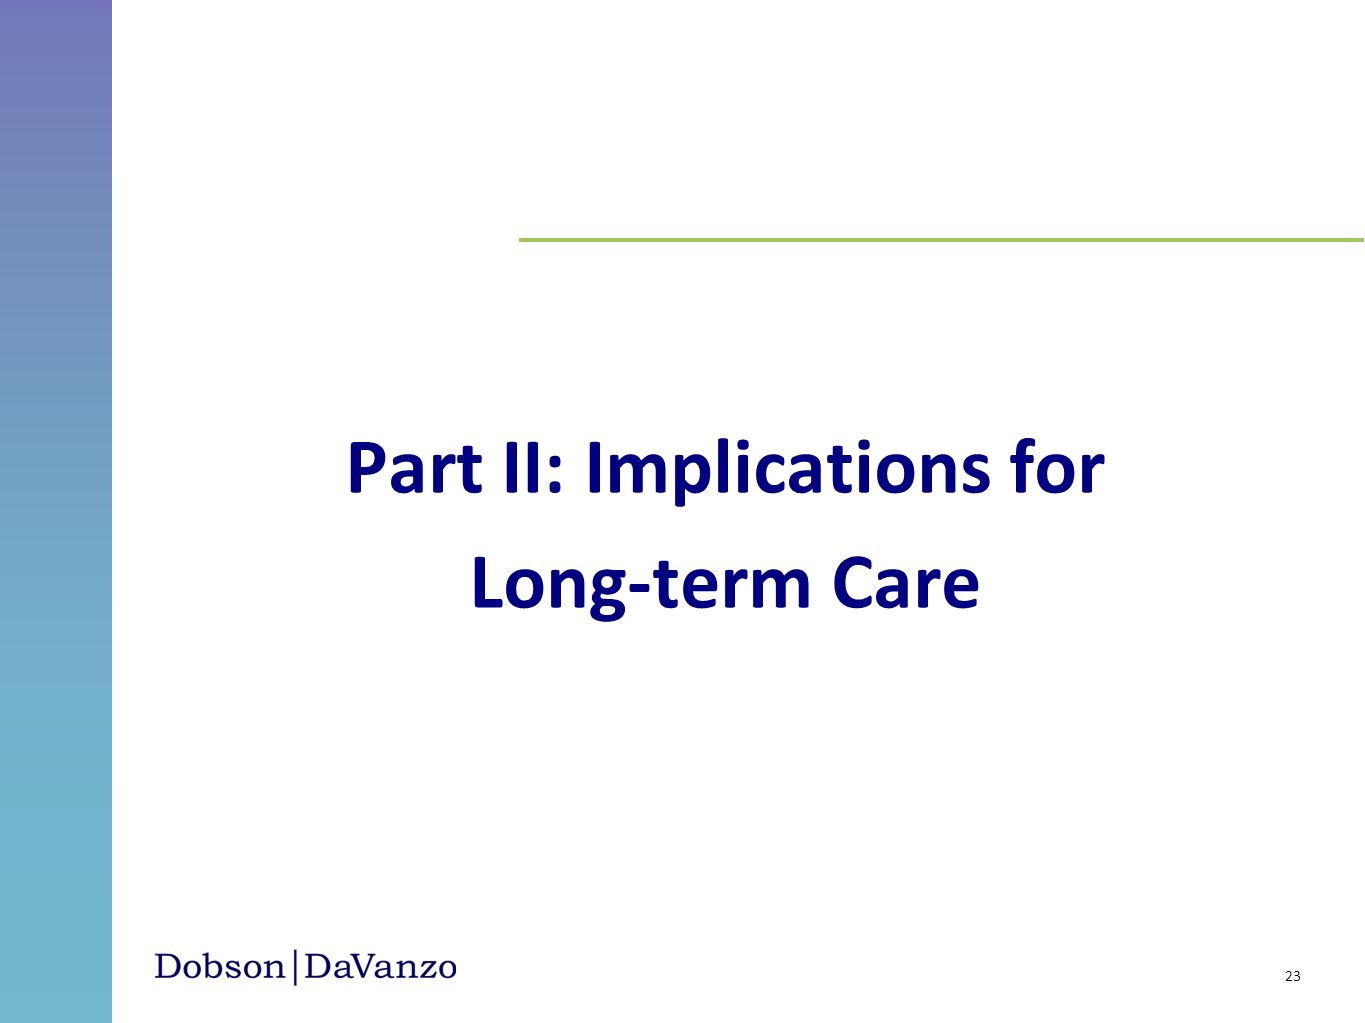 Part II: Implications for Long-term Care